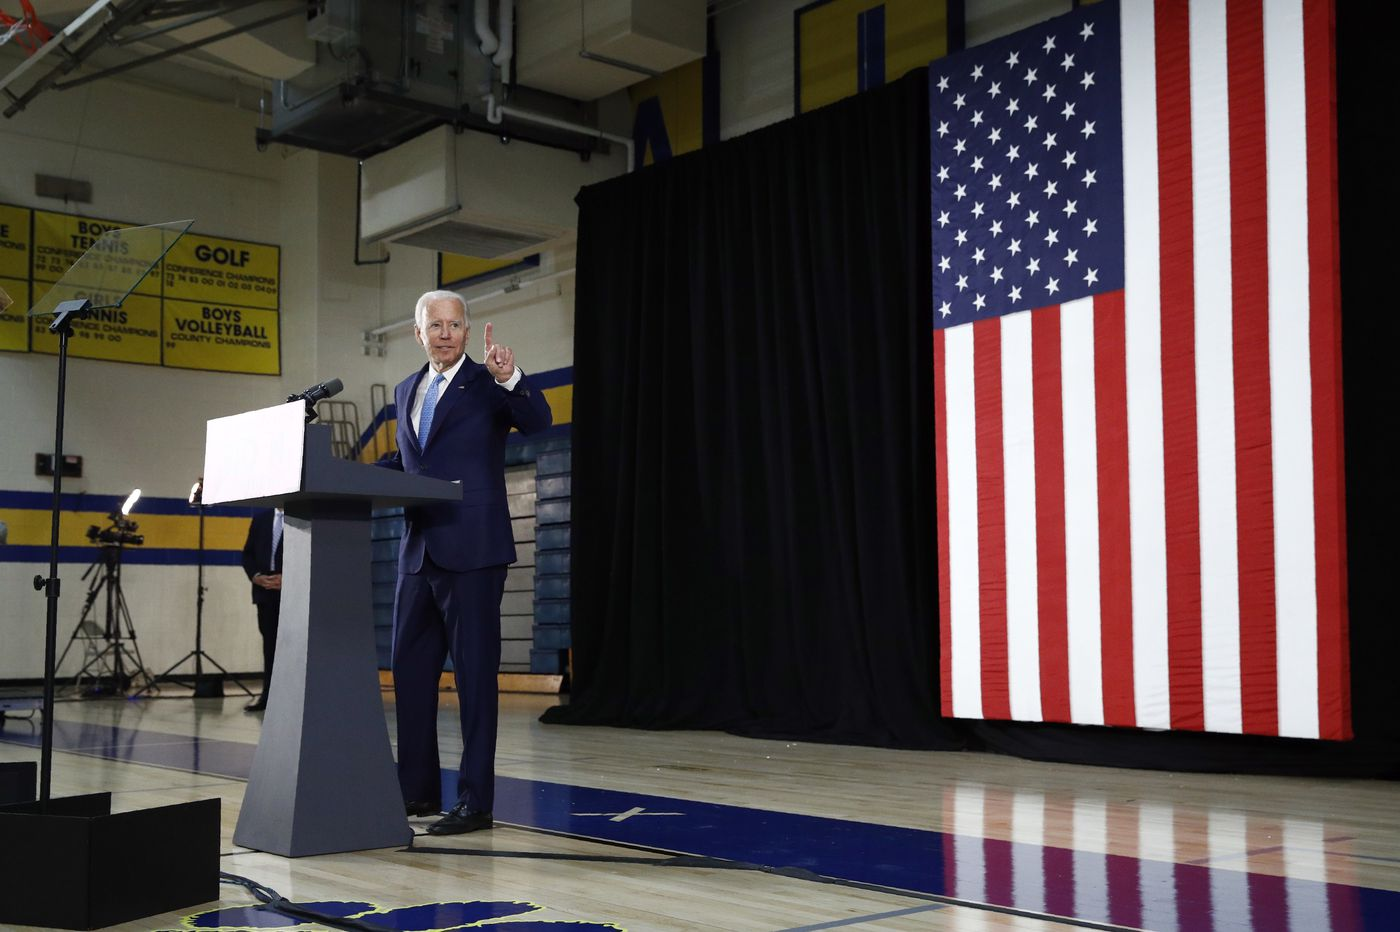 Biden opens the door to expand school choice | Opinion